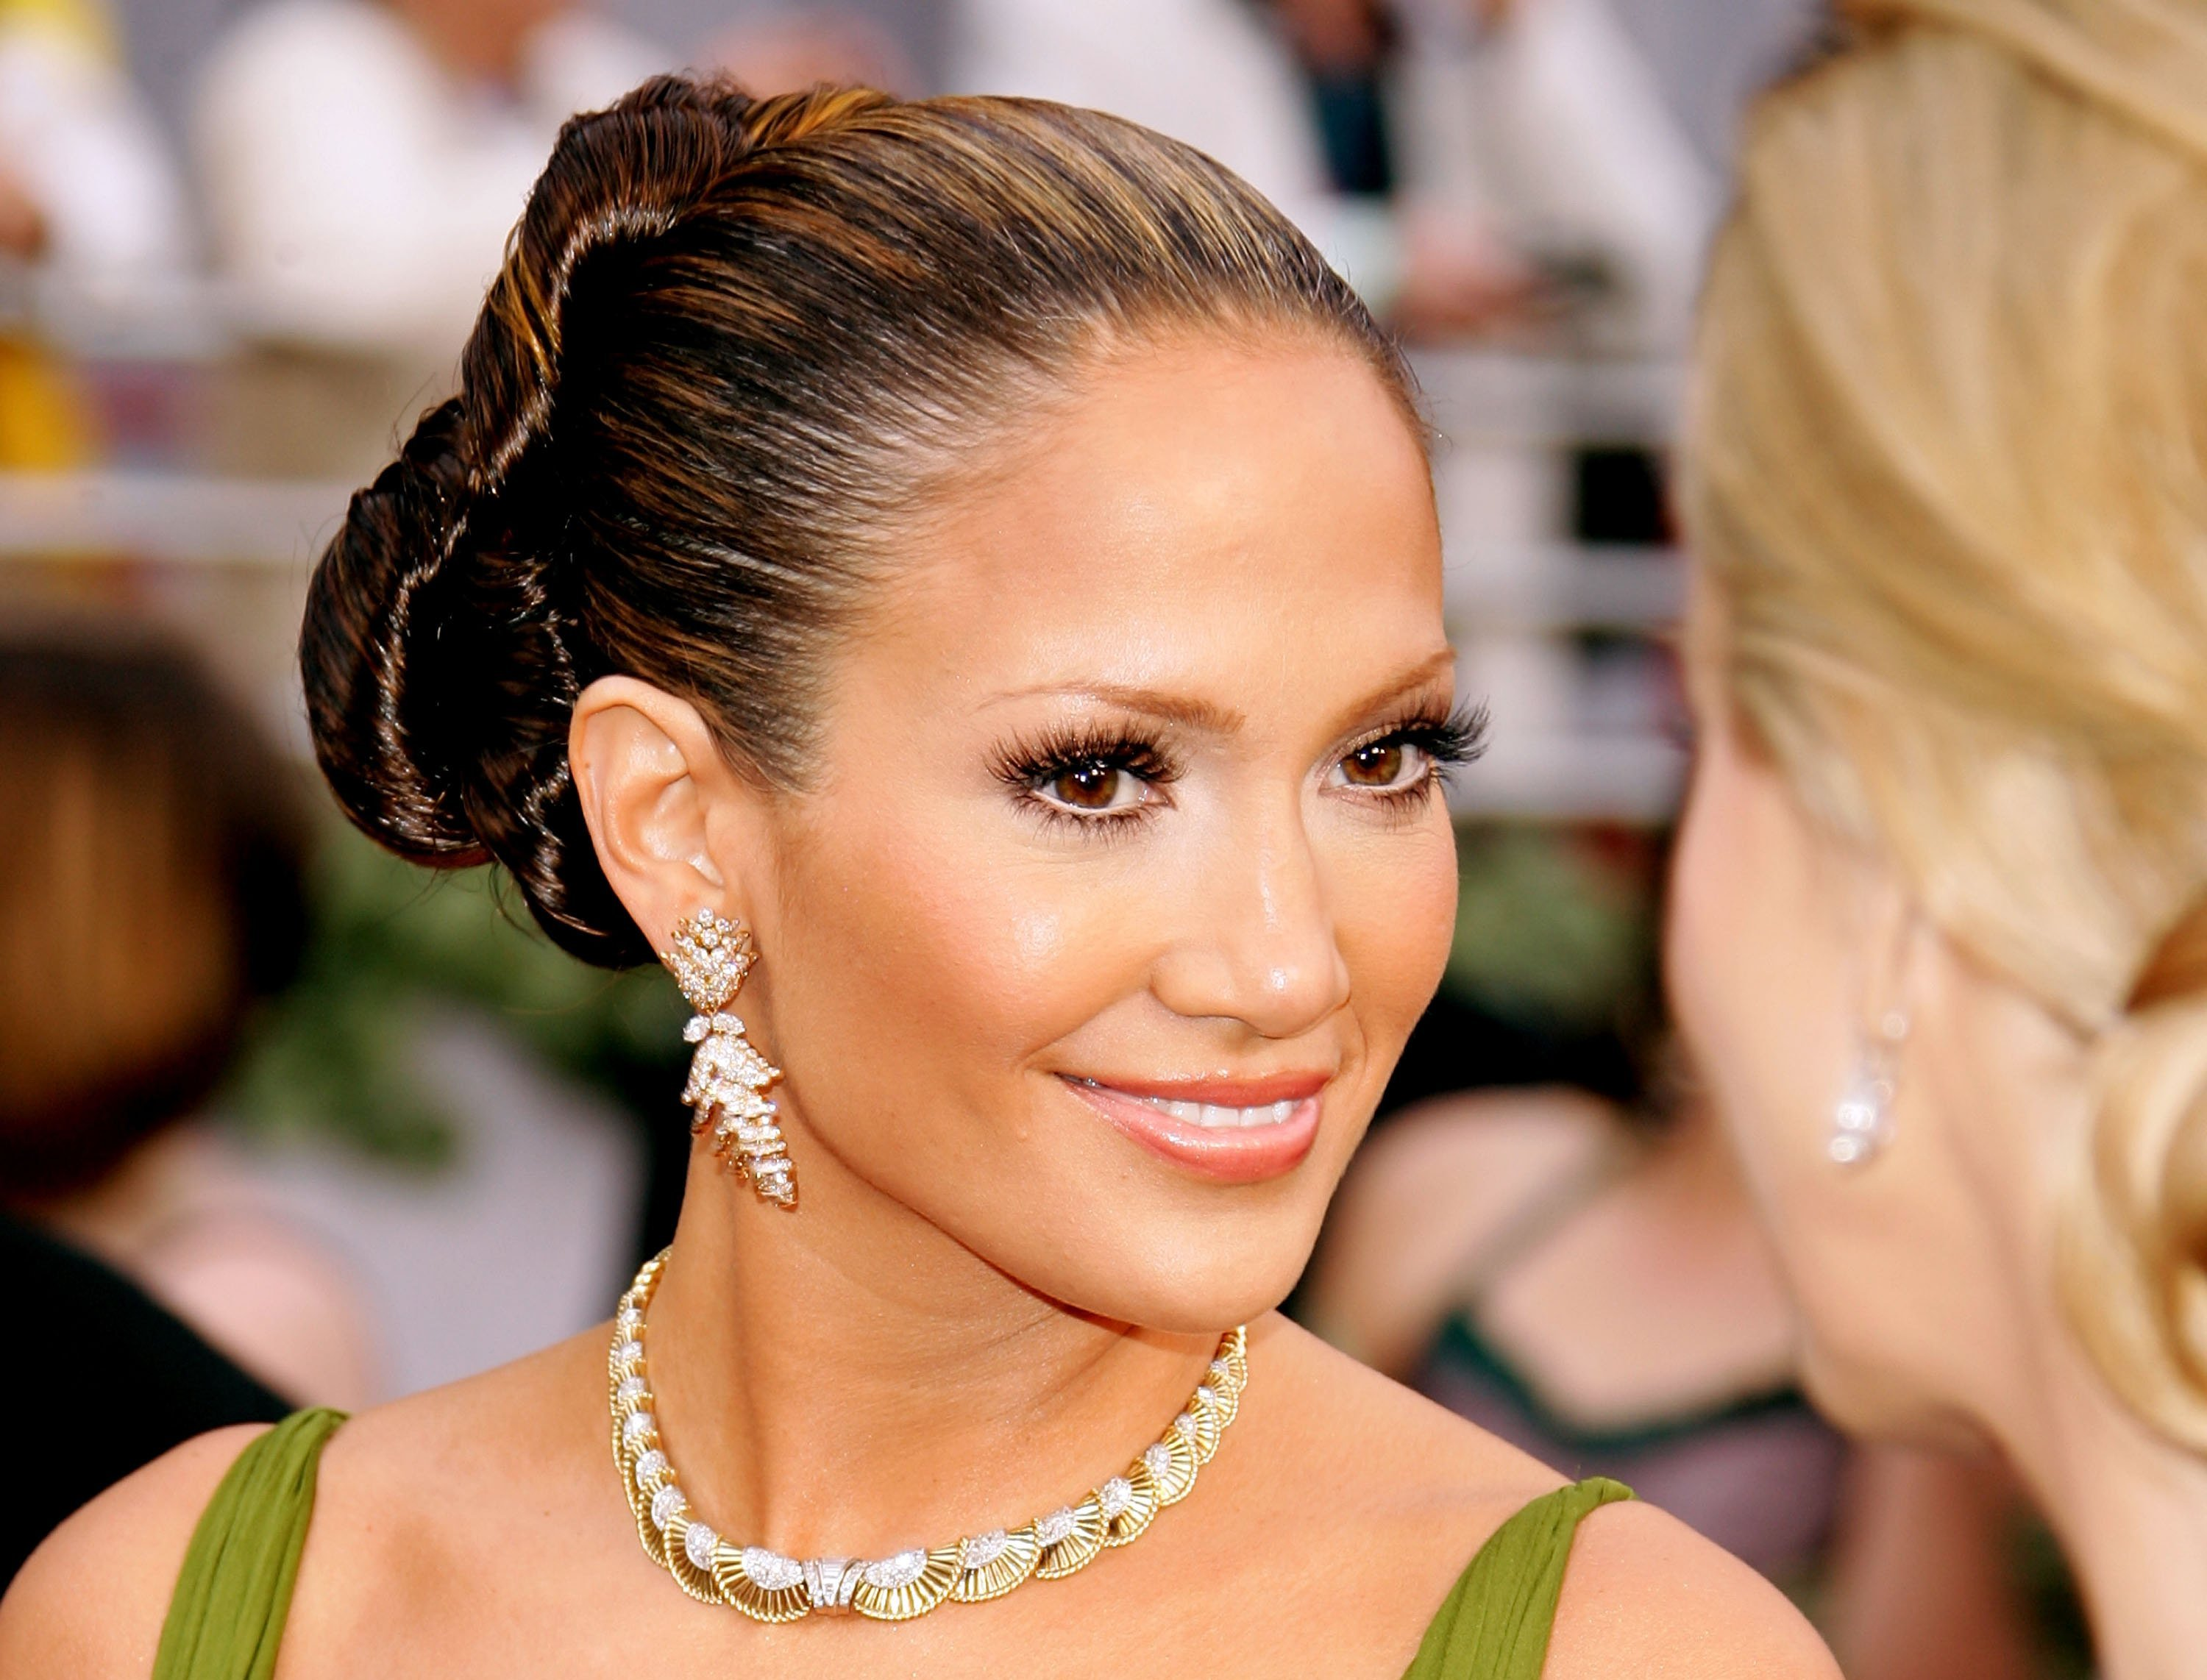 Actress and singer Jennifer Lopez attends the 2006 Annual Academy Awards in Hollywood California. | Photo: Getty Images